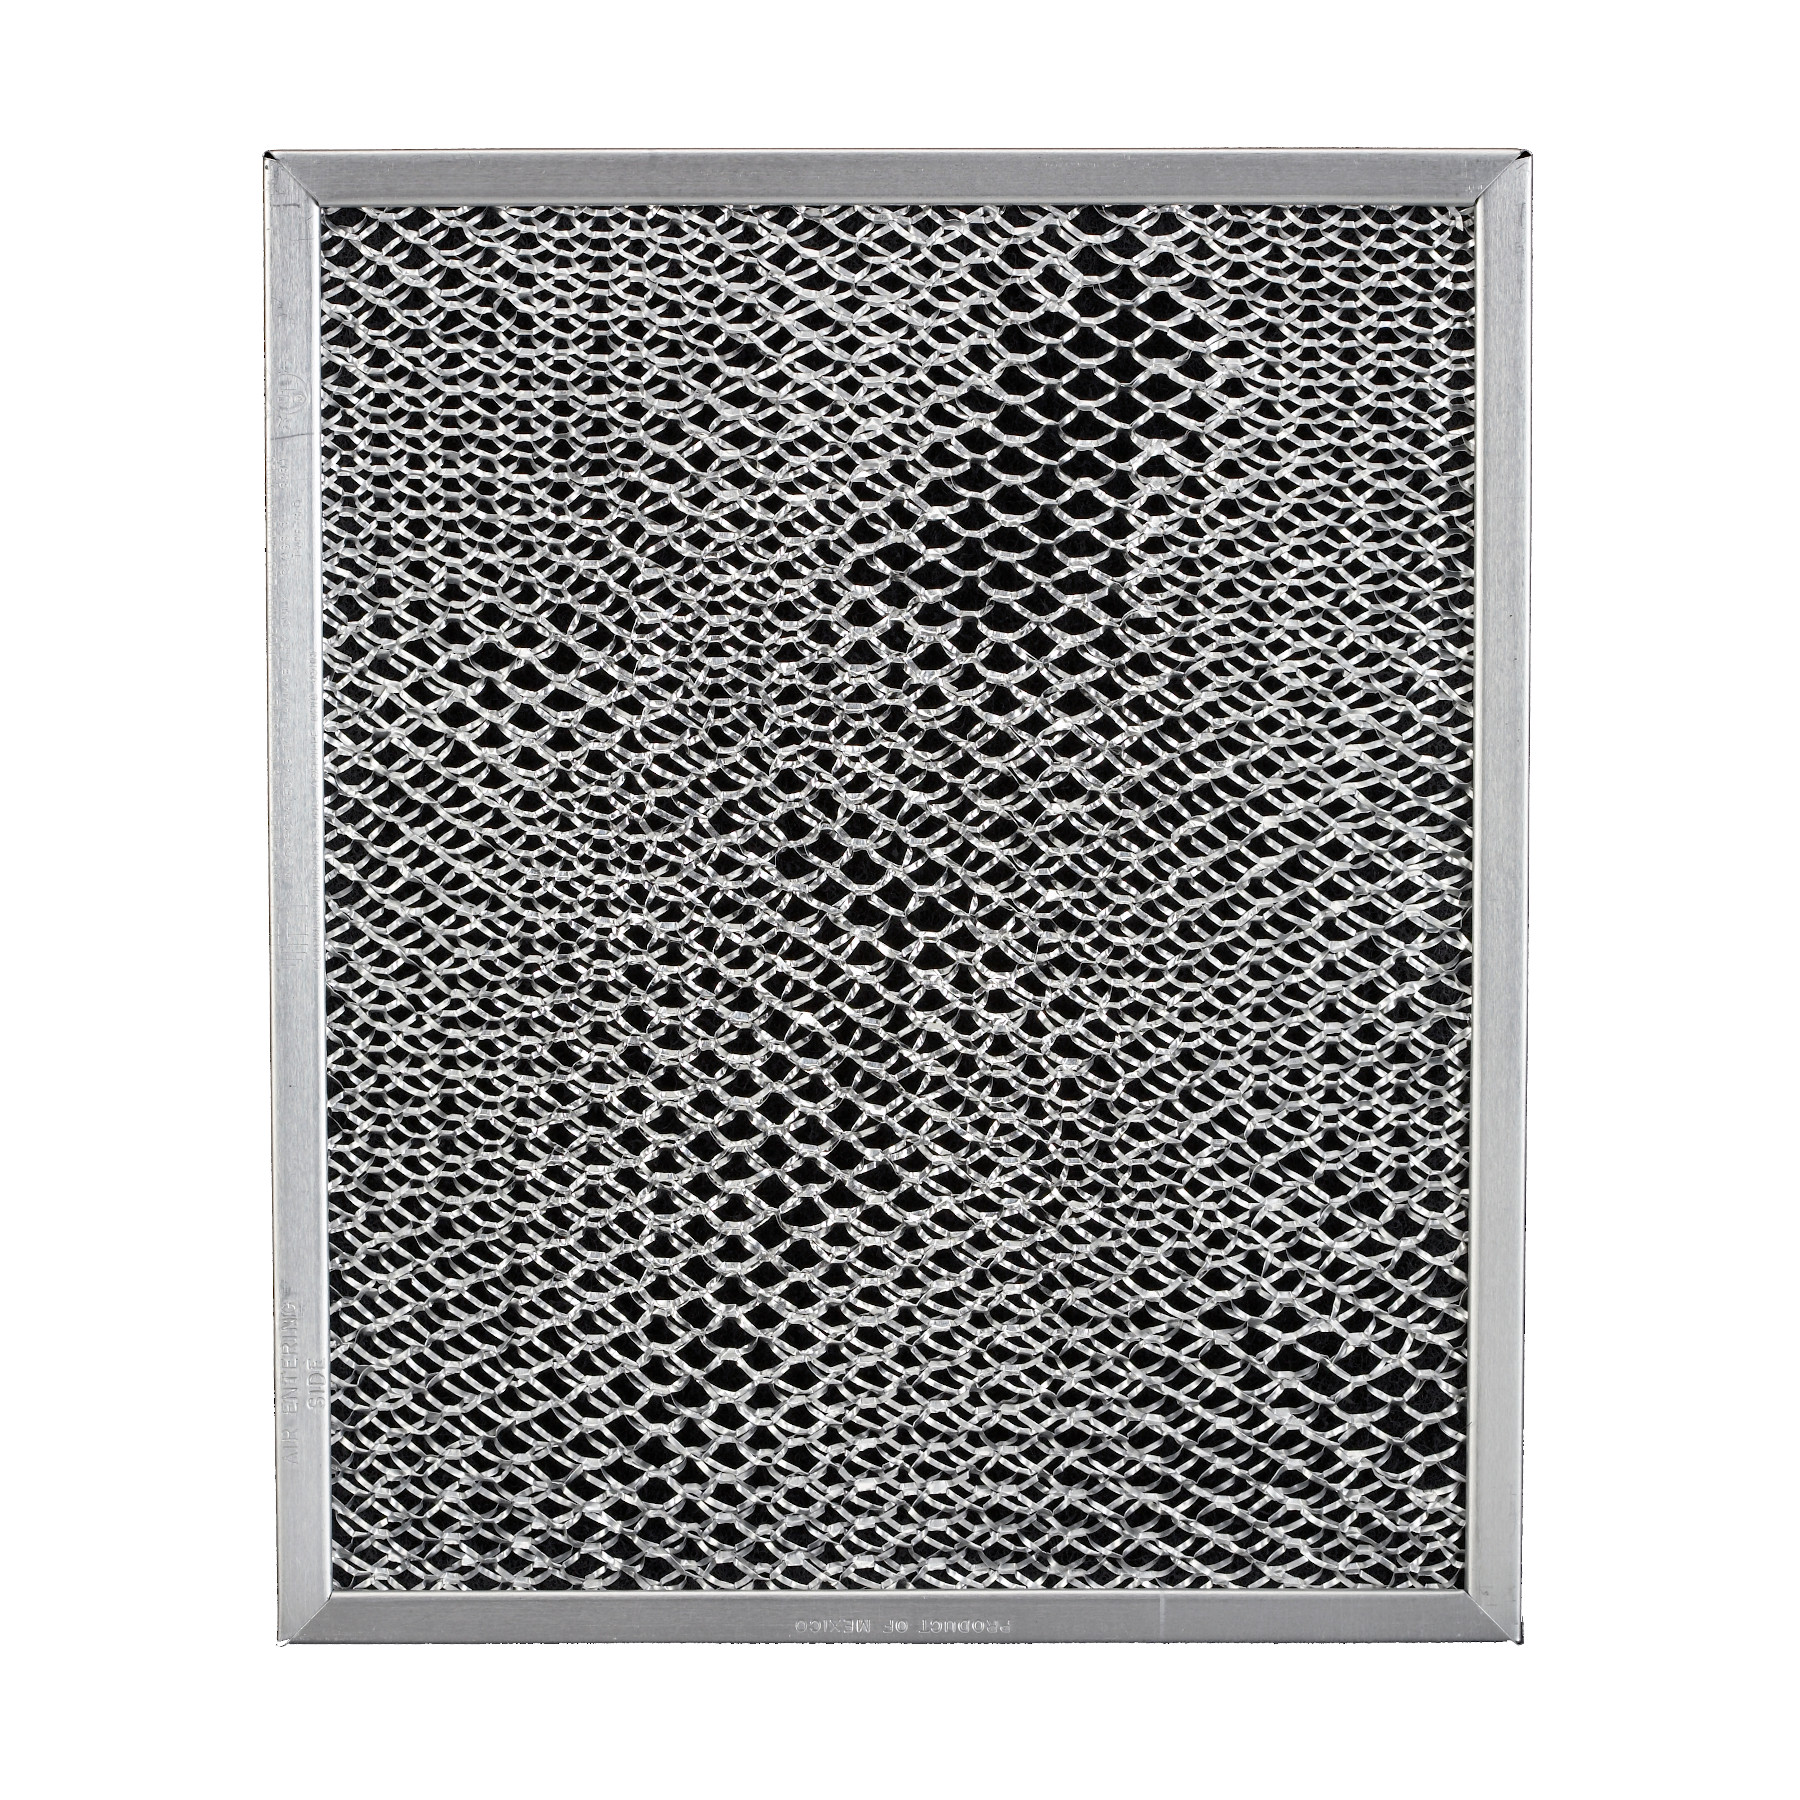 Non-Duct Replacement Filter, 8-Inch x 9-1/2-Inch